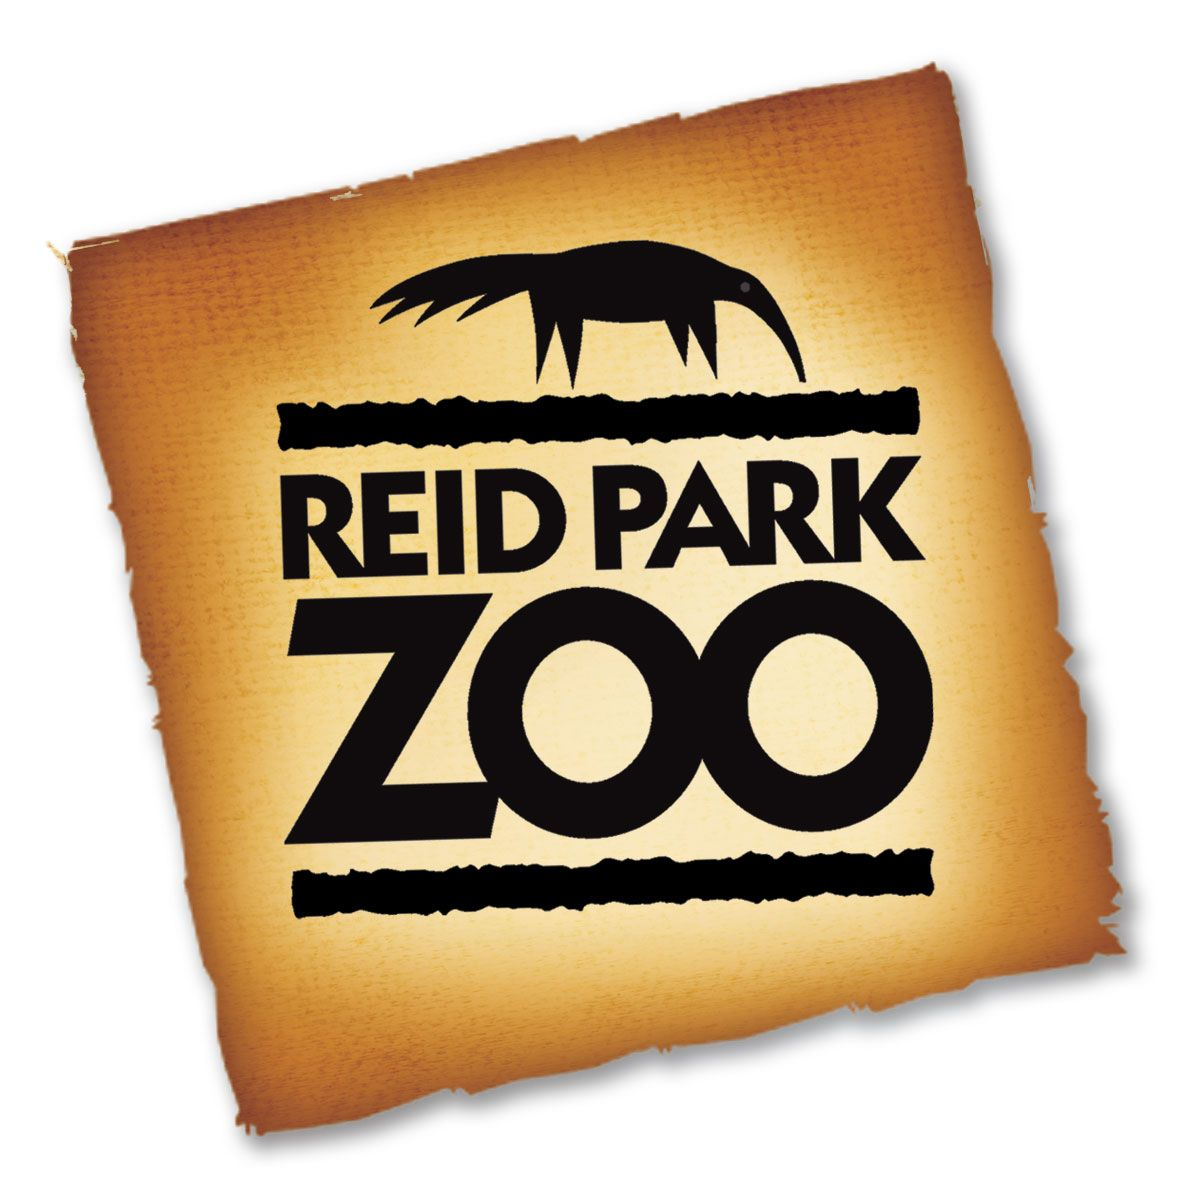 Reid Park Zoo Logo with anteater on a stylized brown paper background